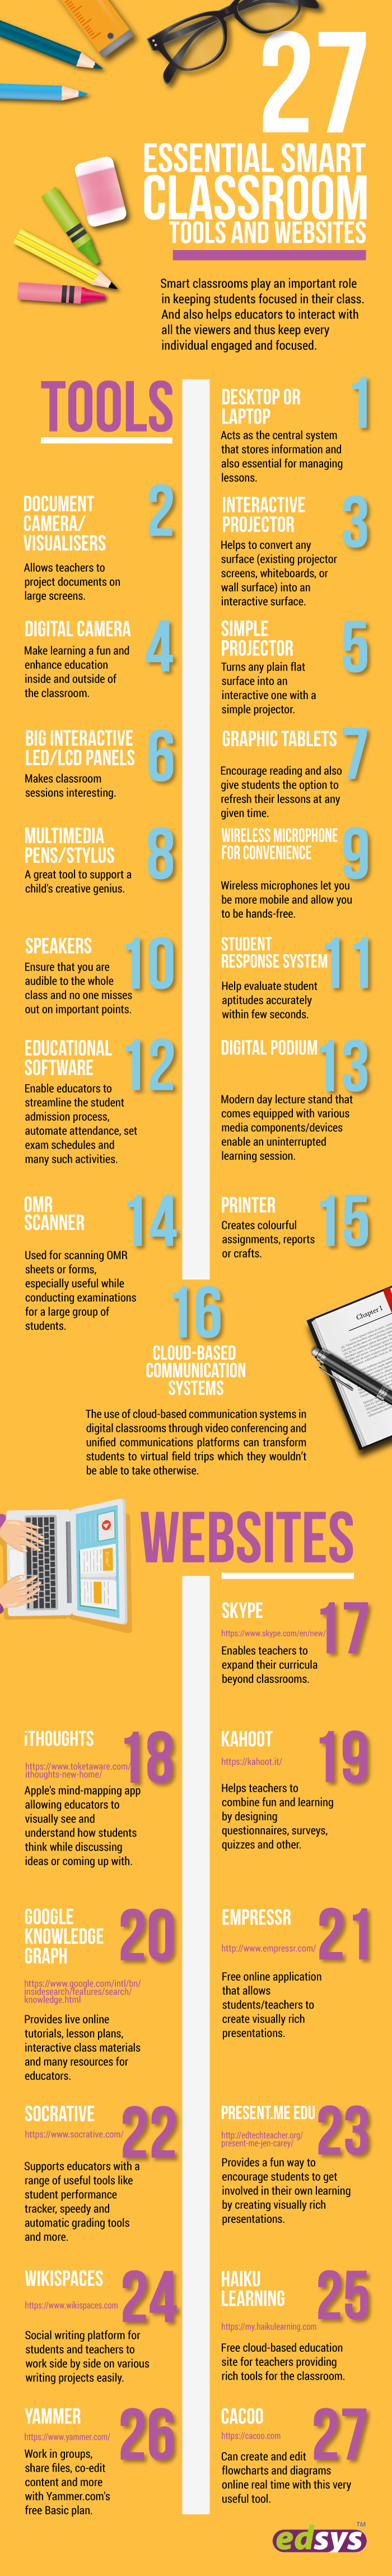 27 Essential Smart Classroom Tools and Websites infographic